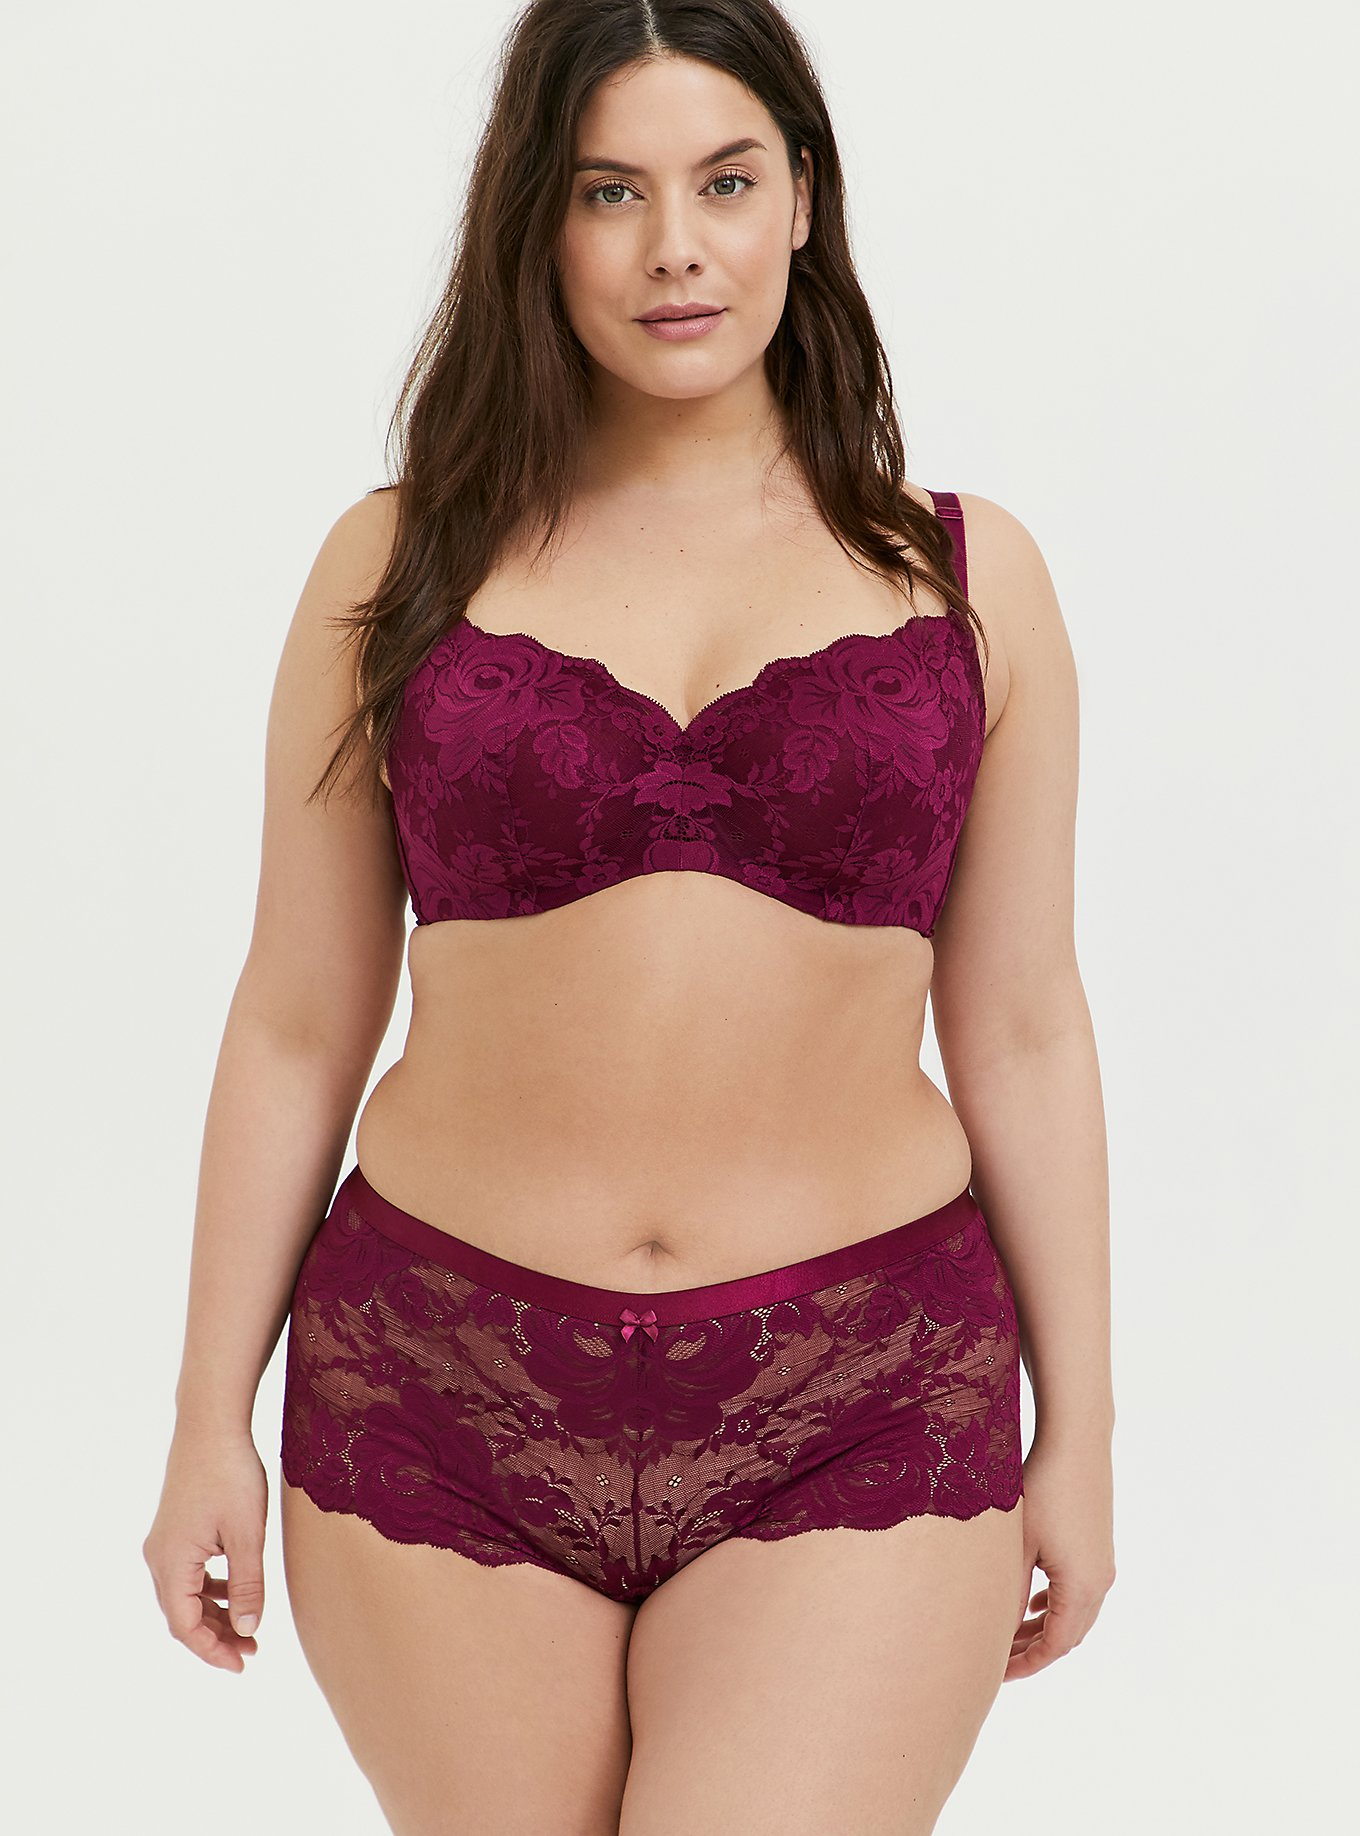 Lace 360 Back Smoothing™ Full Coverage Balconette Bra and Cheeky Panty, , hi-res